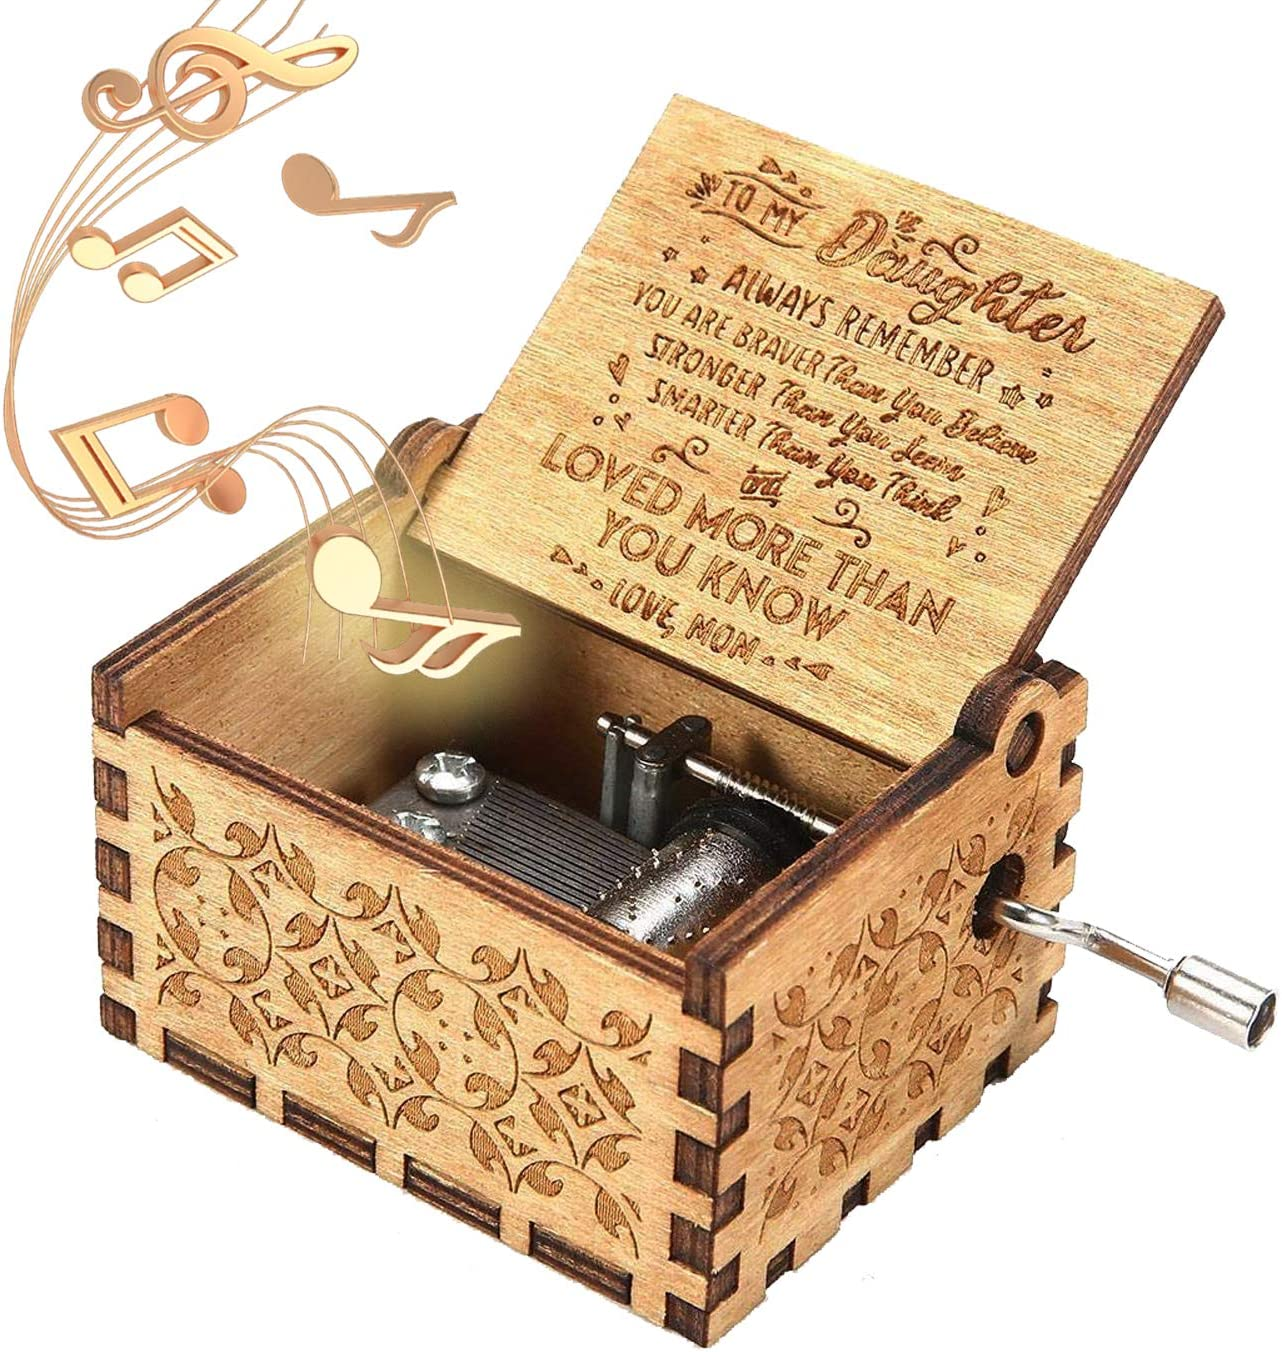 Unique Design Music Box for Wife 1 Set from Husband to Wife ukebobo Wooden Music Box- Color Painting You are My Sunshine Music Box